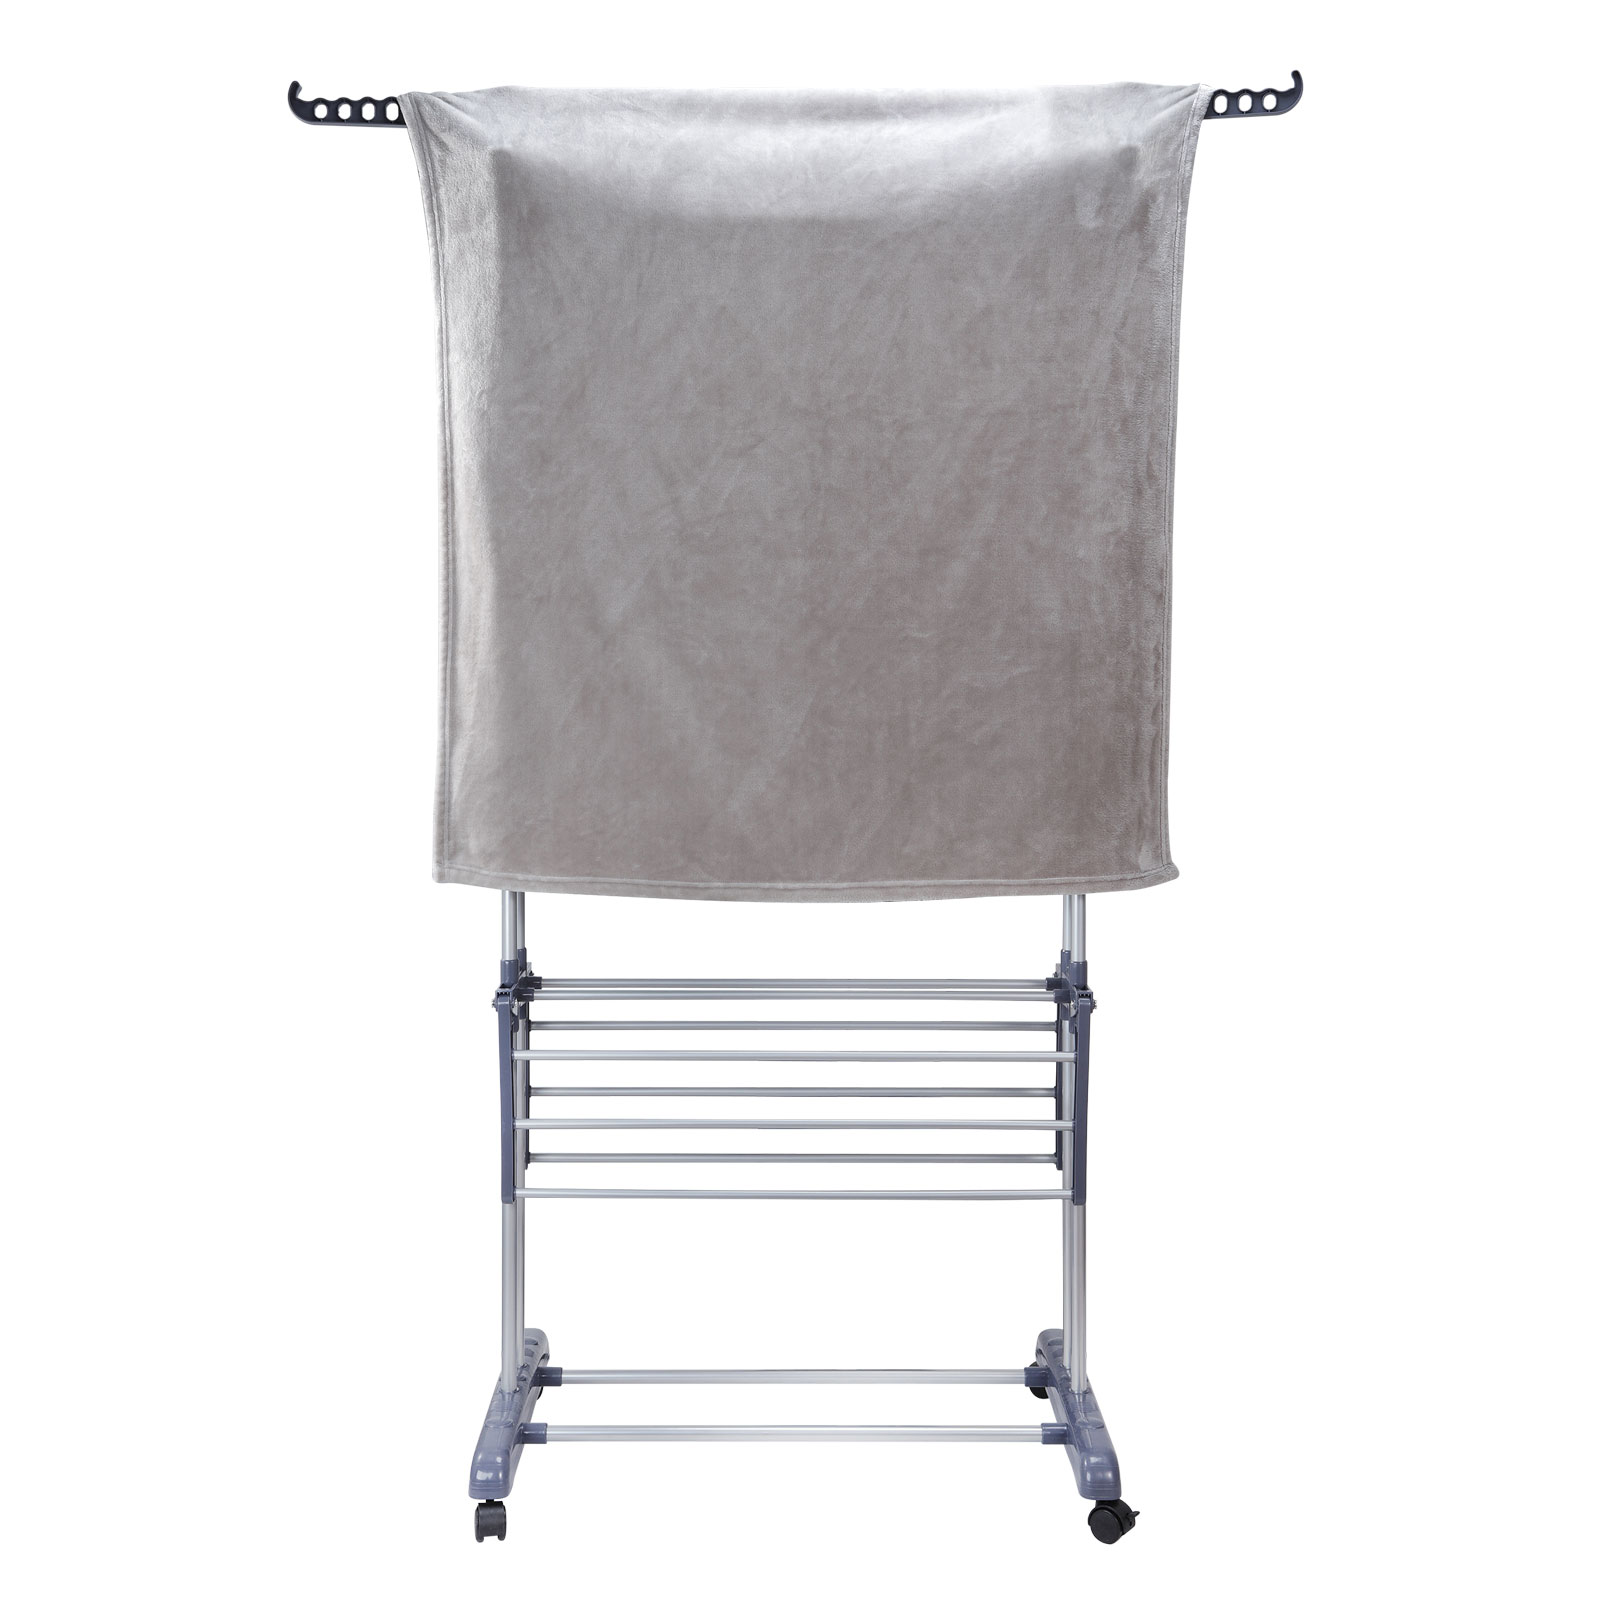 Outdoor Cloth Dryer ~ Foldable tier clothes airer laundry dryer rack indoor